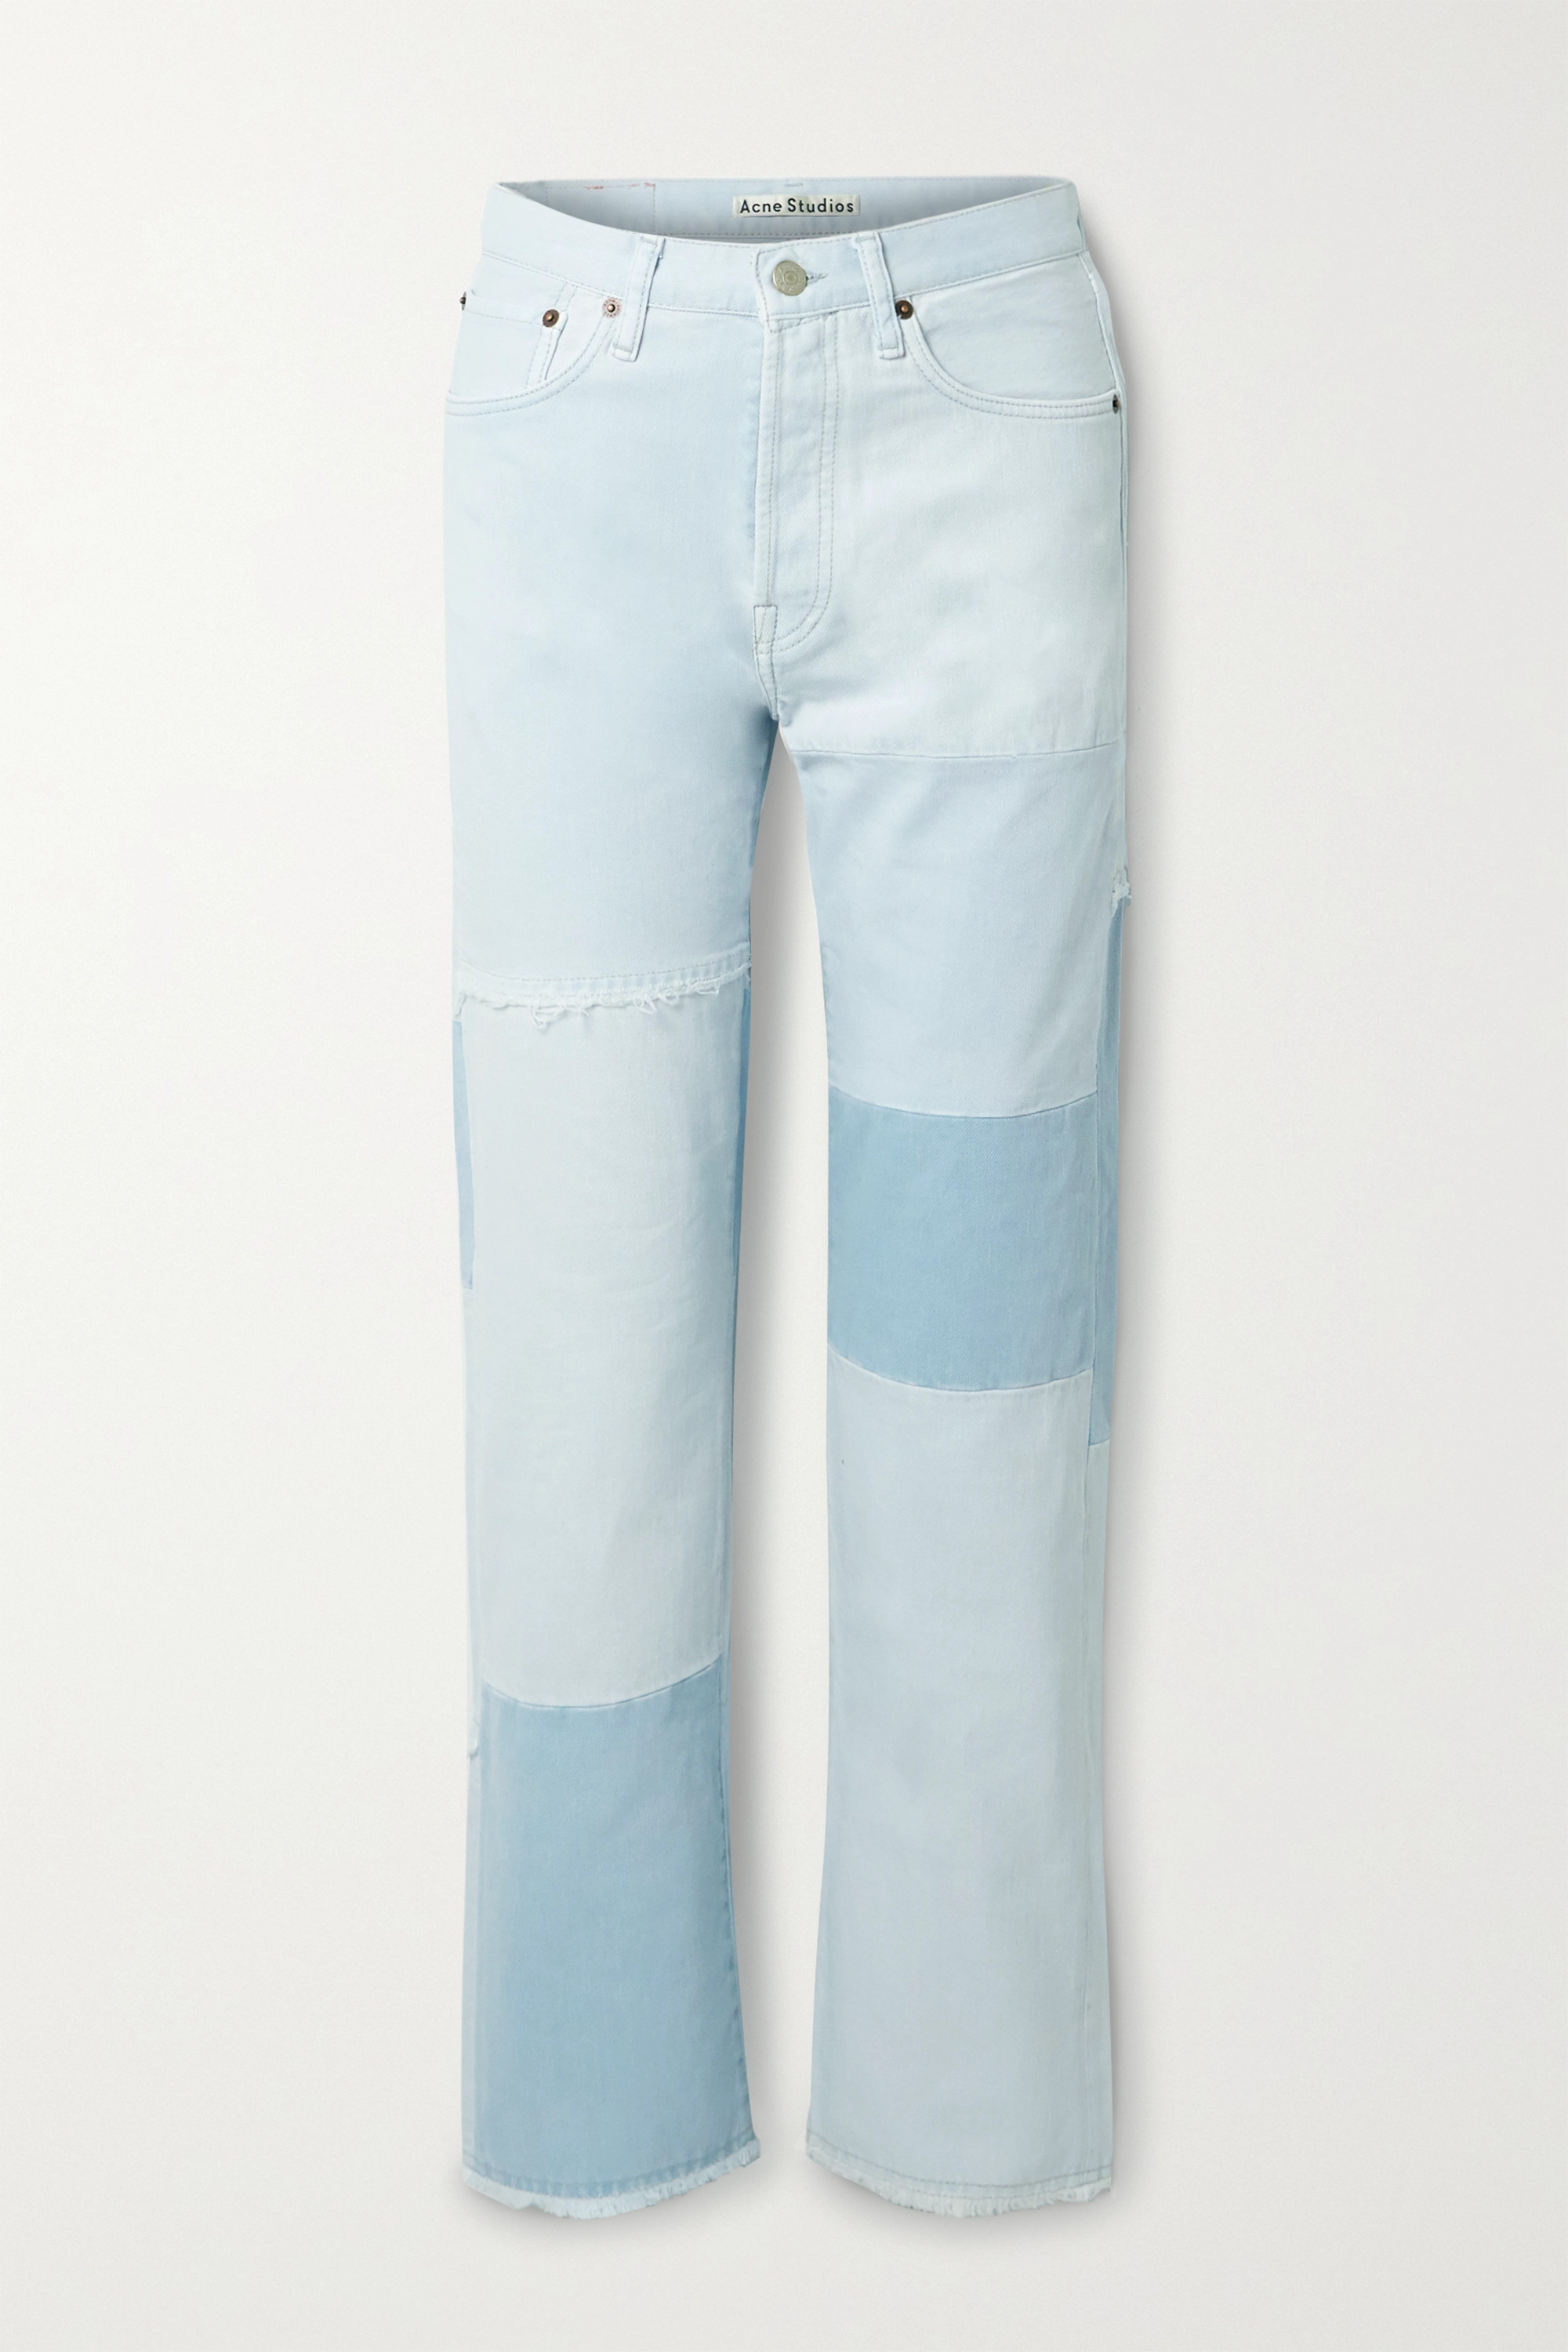 Acne Studios + NET SUSTAIN 1996 frayed patchwork organic high-rise straight-leg jeans